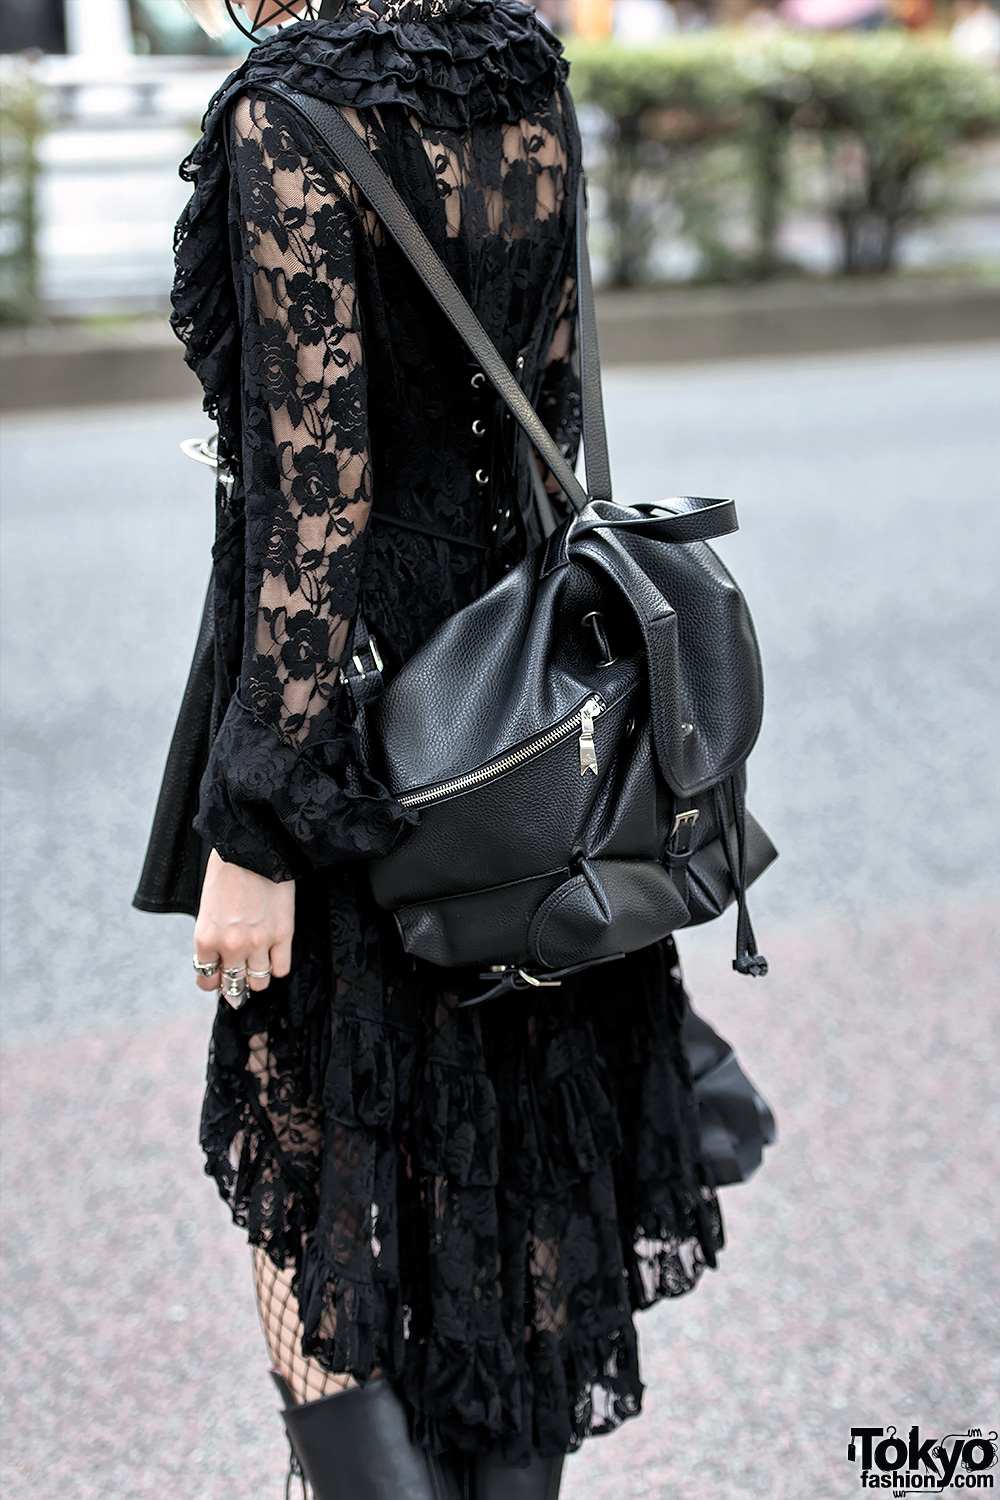 Gothic Harajuku Girl In Black Lace Mini Dress Platform